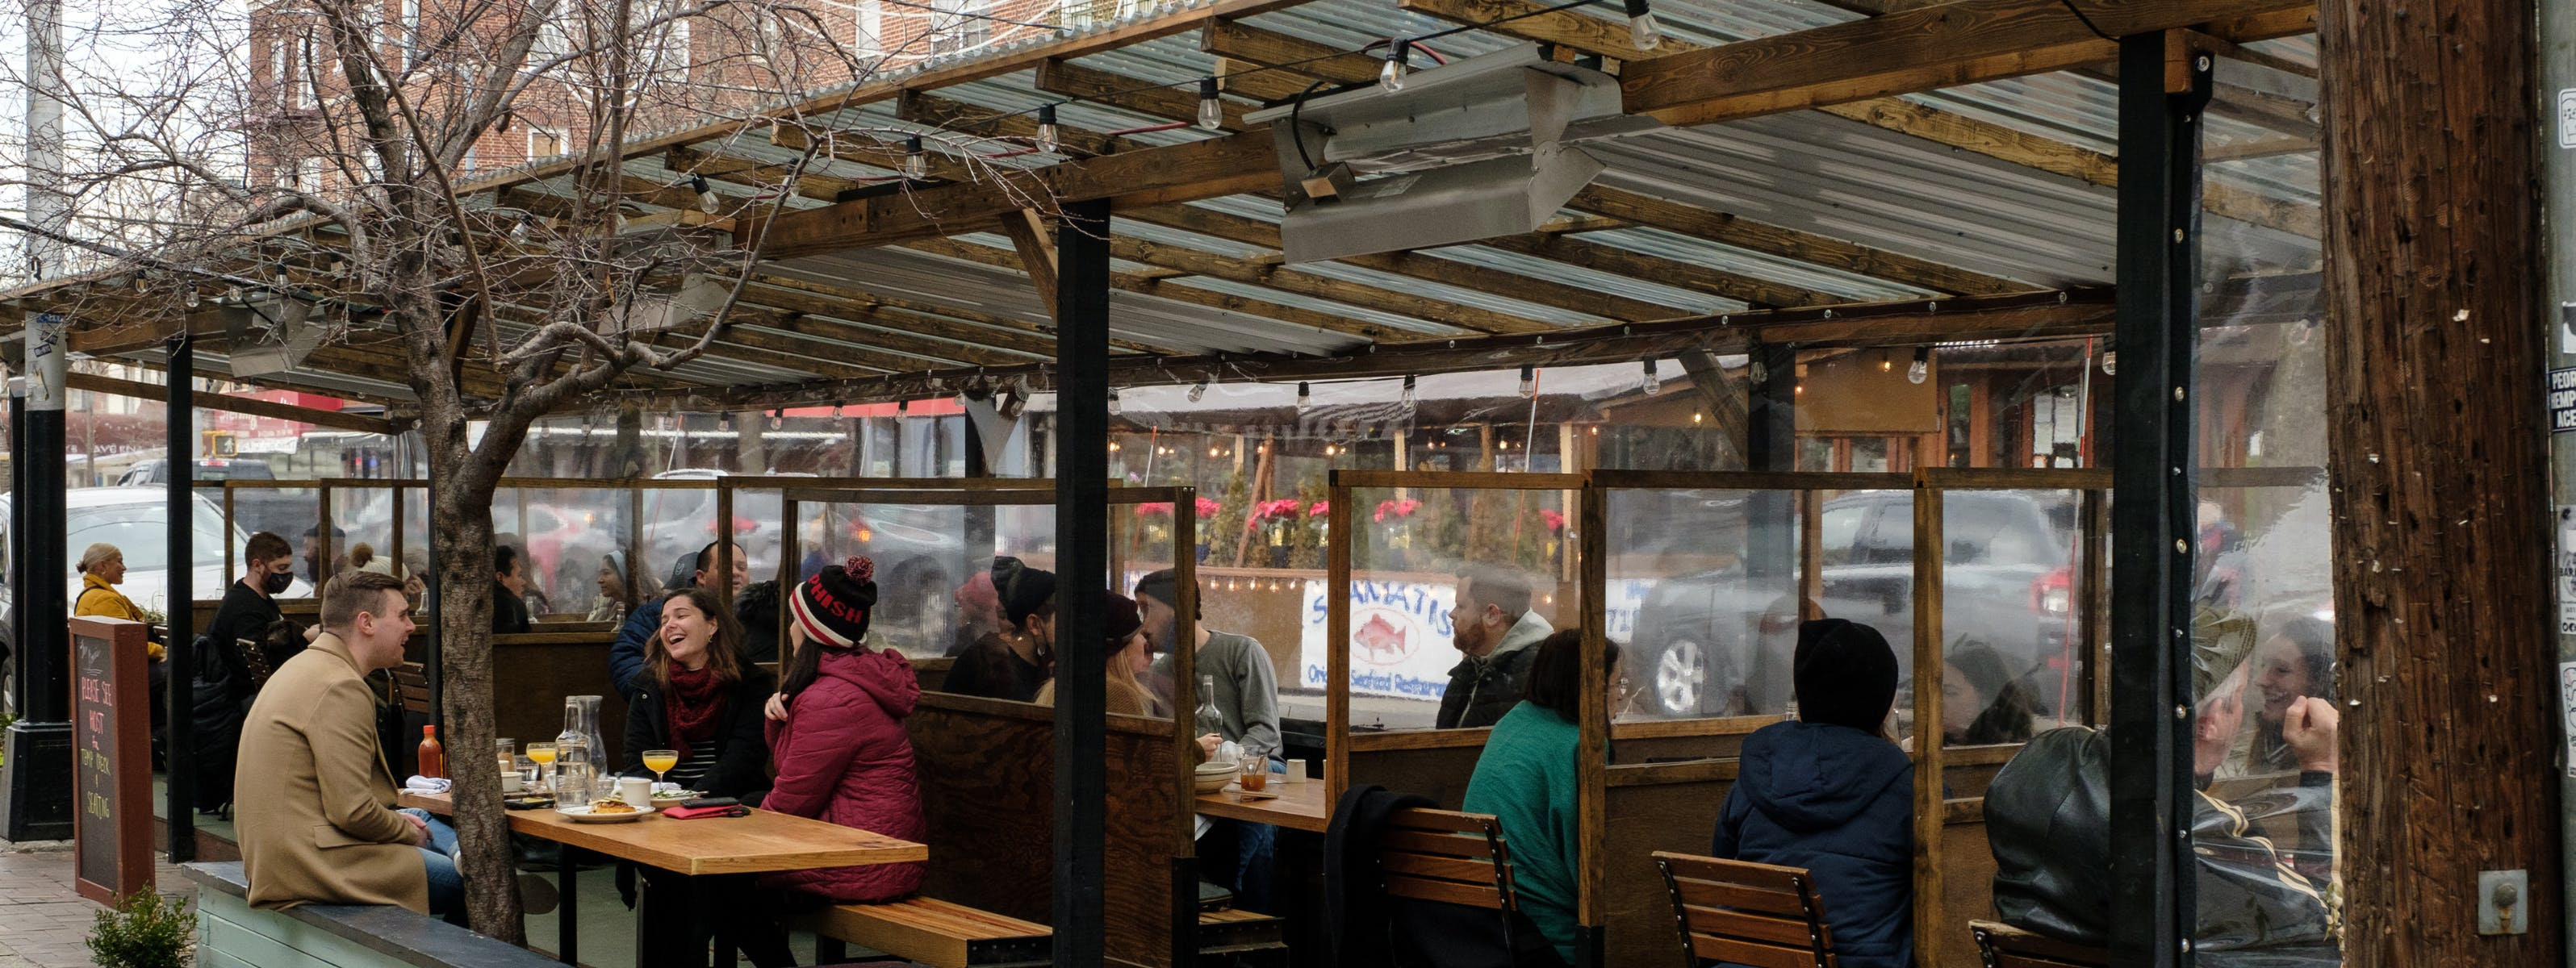 NYC Bars With Outdoor Heat Lamps